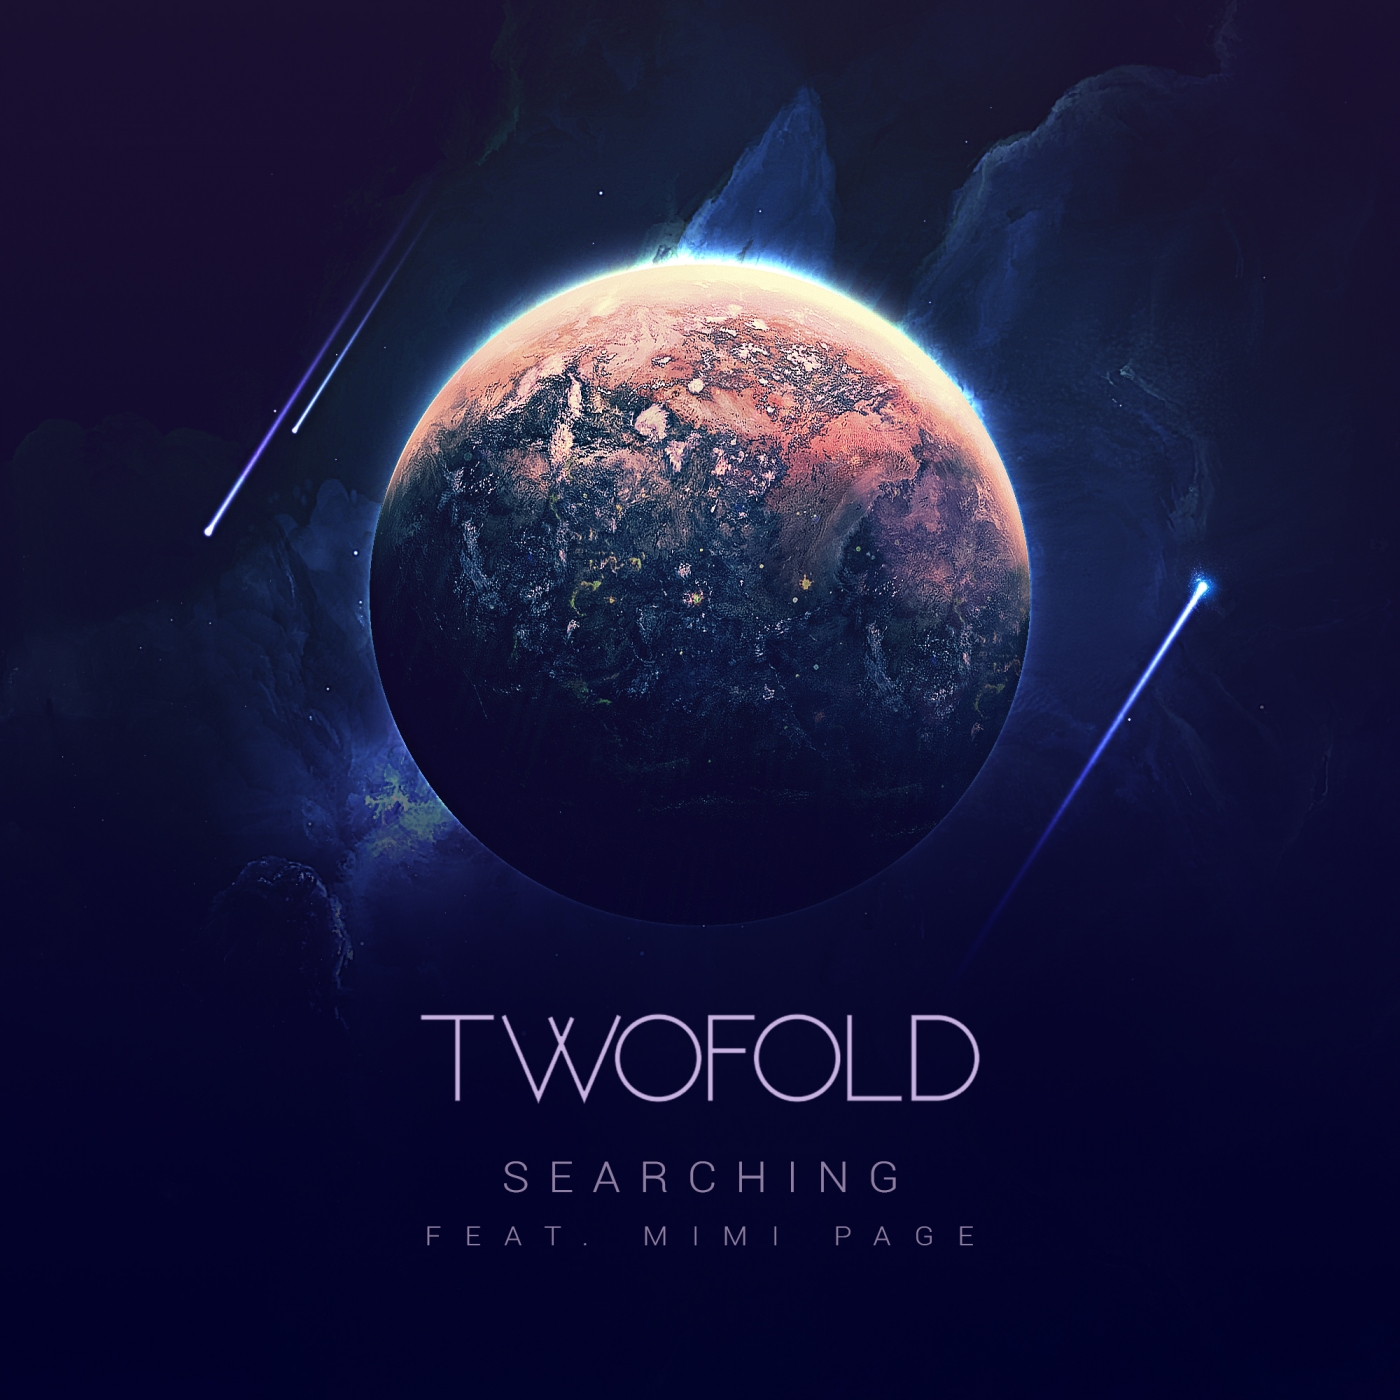 twofold-searching-feat-mimi-page